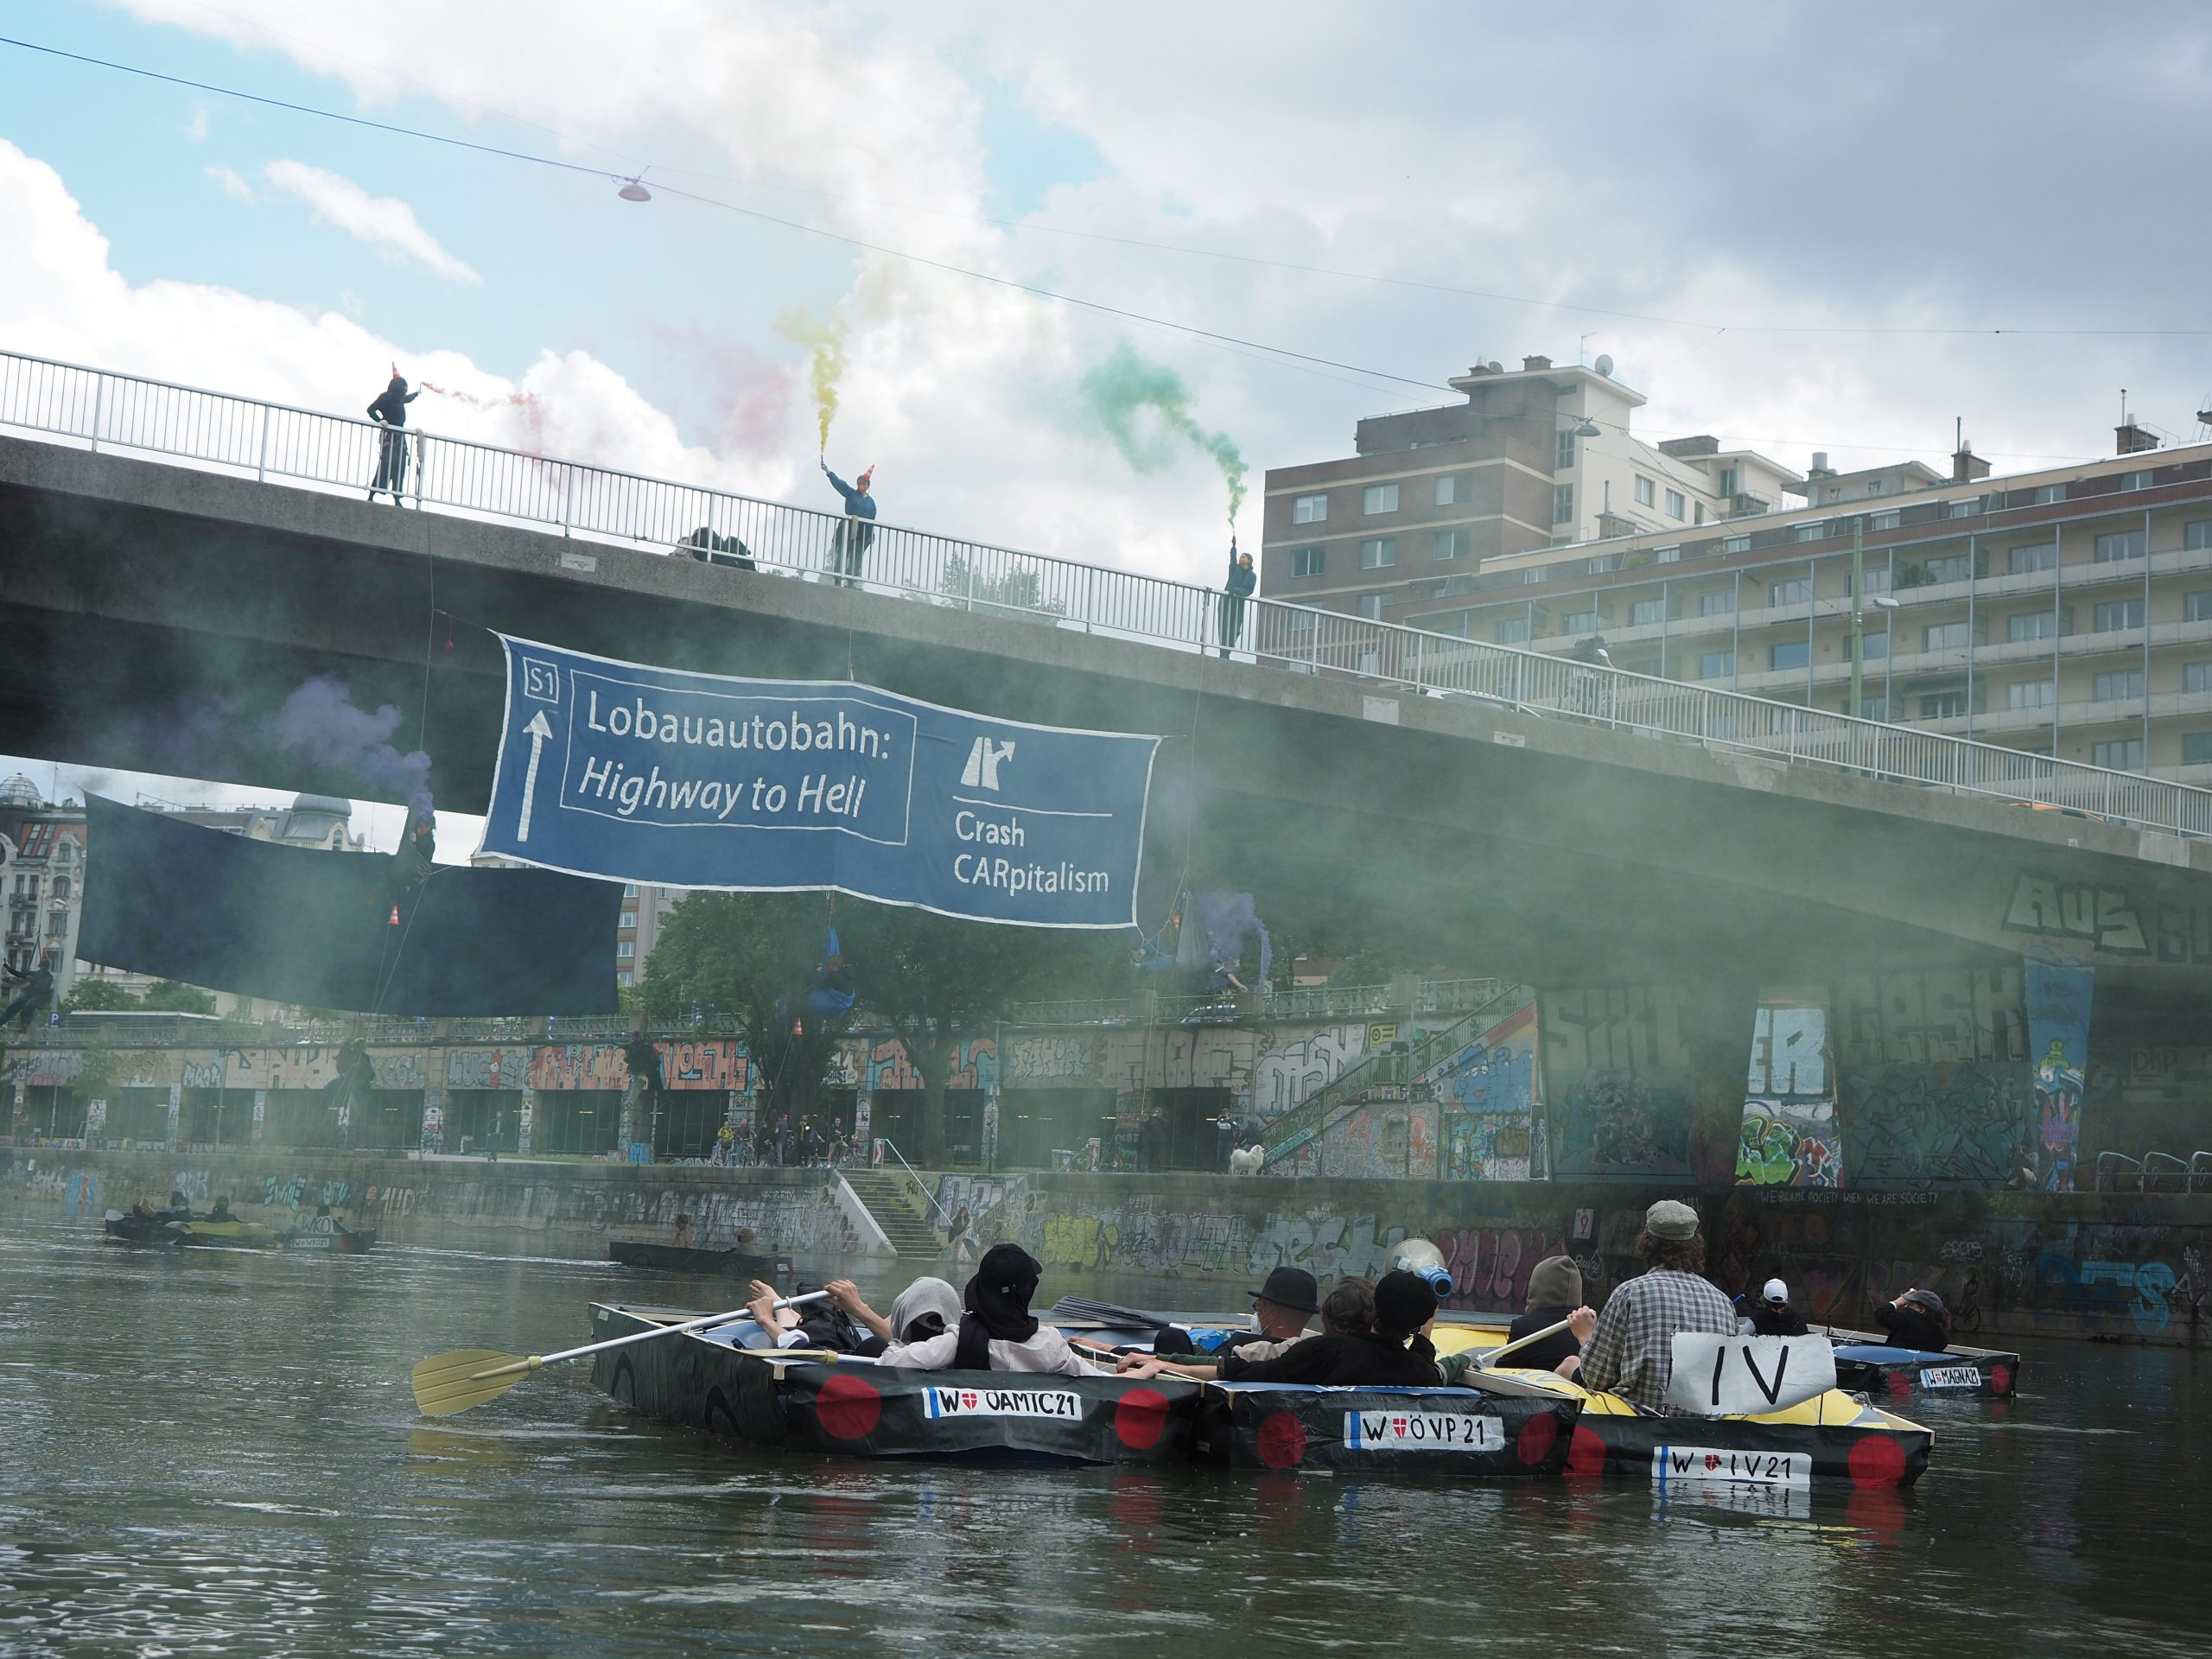 Activists in boats made to look like cars float in the Danube Canal, looking up at activists occupying the Aspern bridge with smoke.